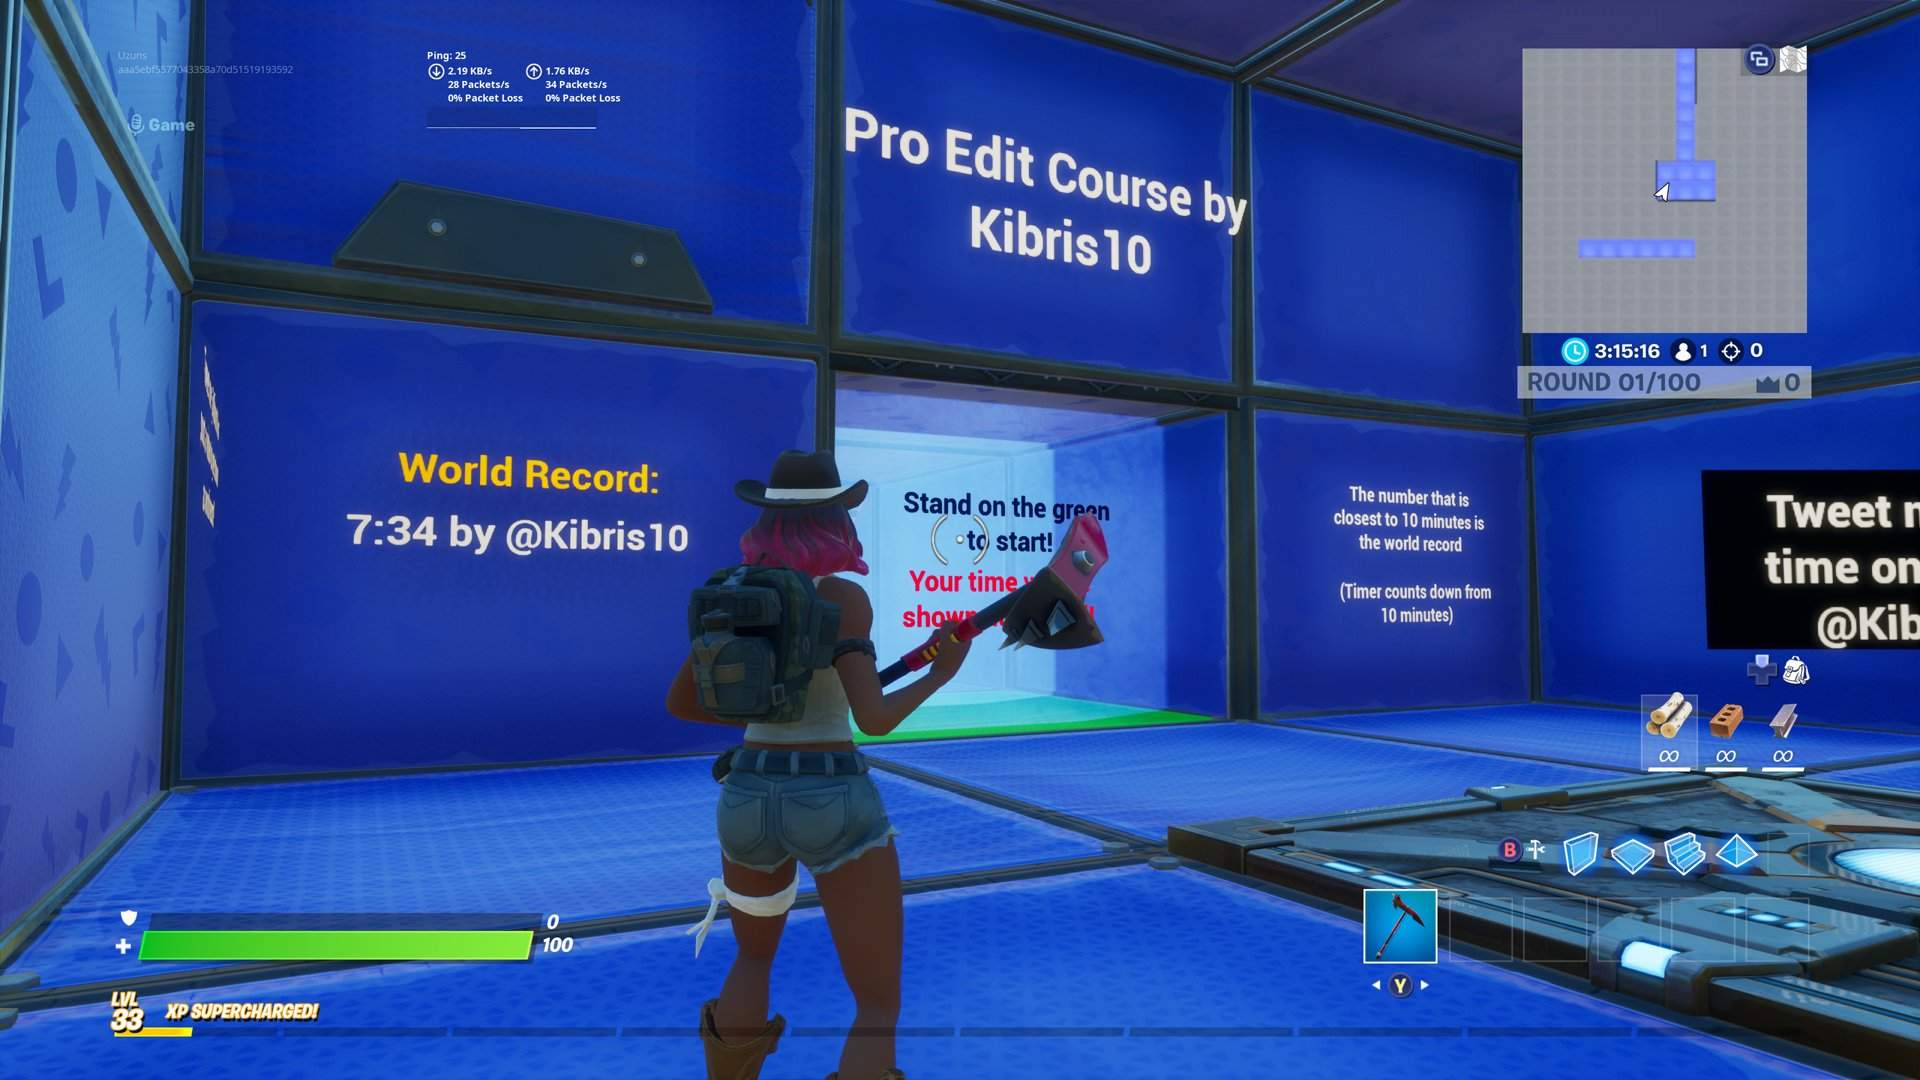 PRO EDIT COURSE BY KIBRIS10